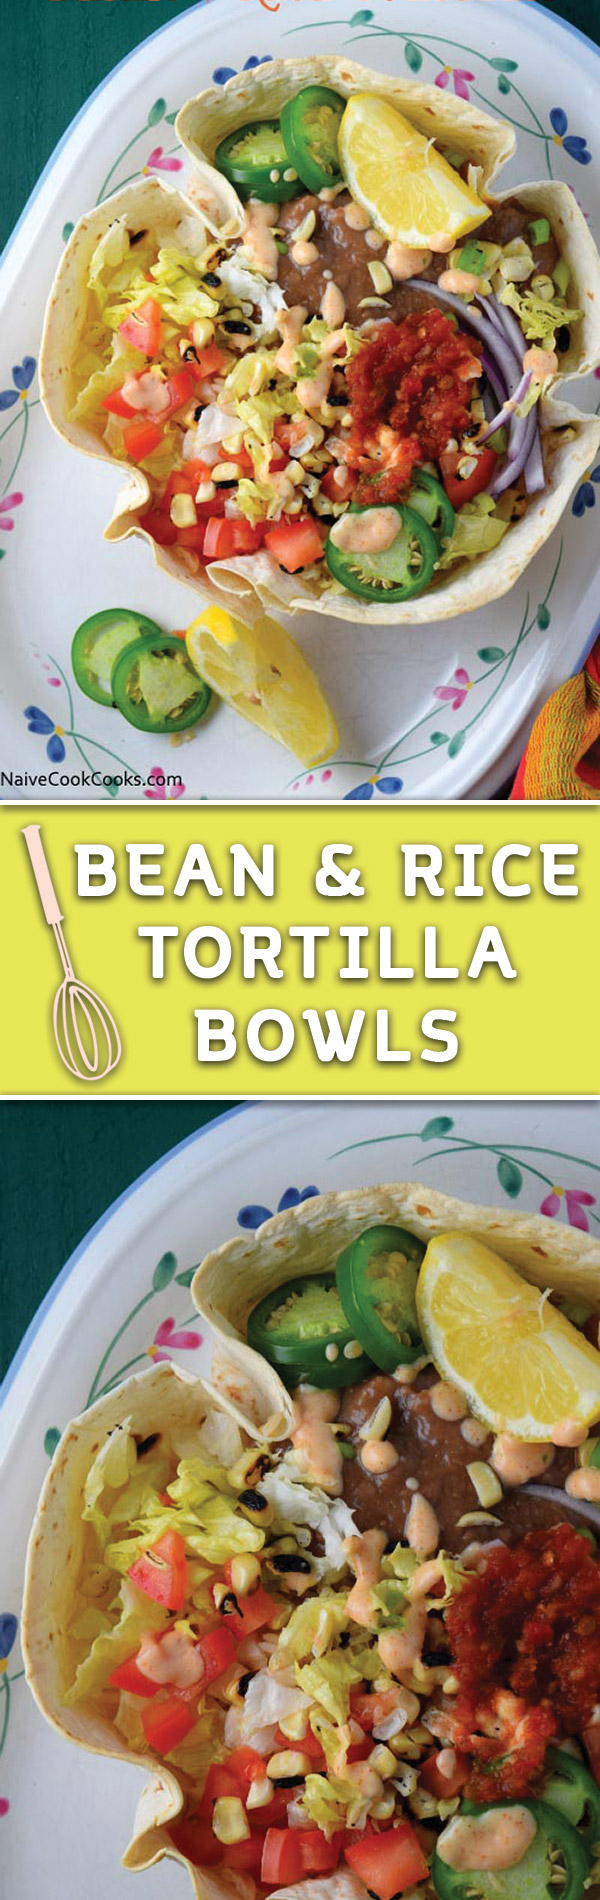 These Tortilla Bowls are filled with fresh homemade refried beans, taco seasoned rice, chipotle salsa, spicy ranch & fresh veggies! Perfect healthy and delicious meal ready in under an hour!